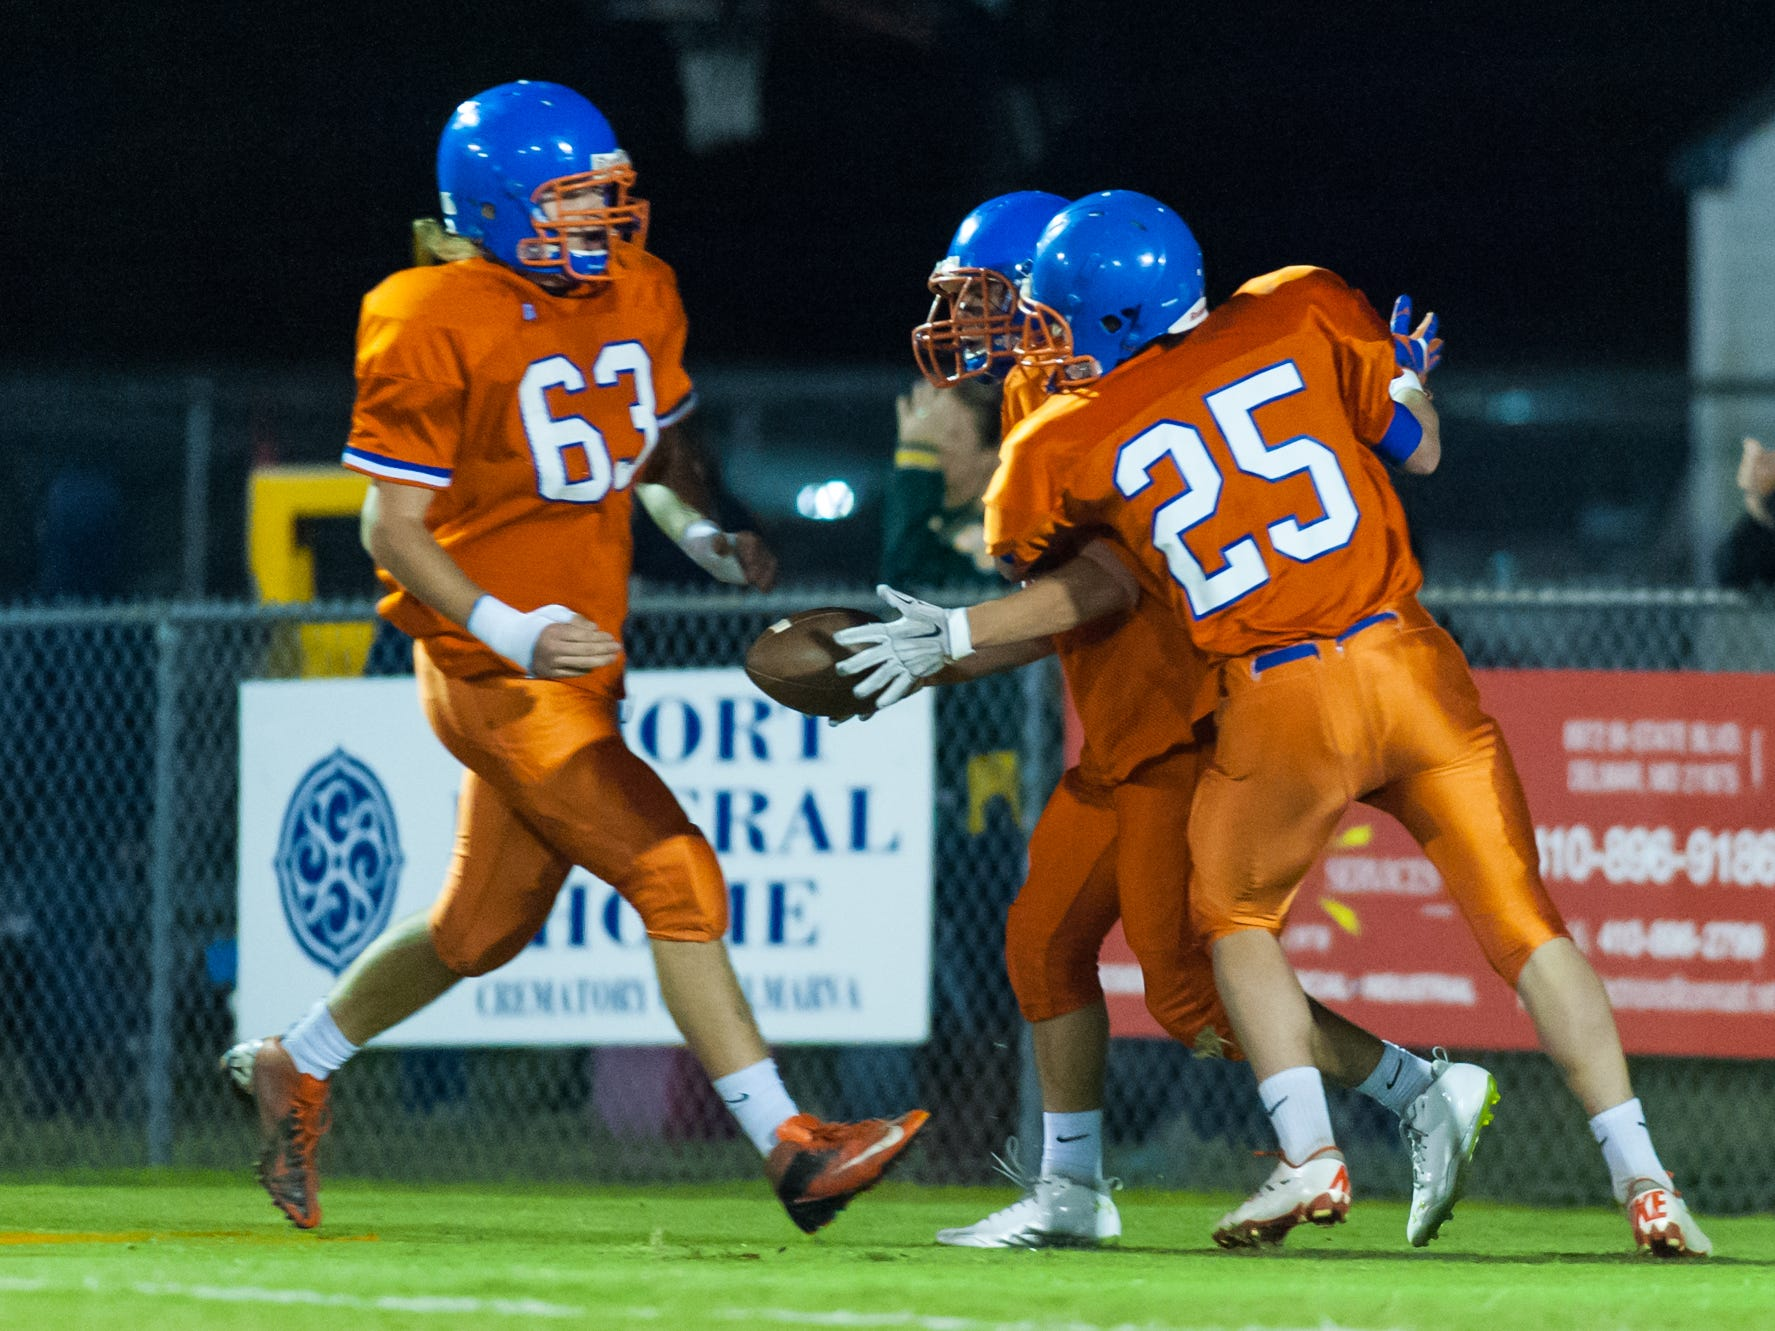 The Delmar defense celebrates a Logan Thomas (36) fumble recovery for a touchdown against Indian River at Delmar High School last Friday.